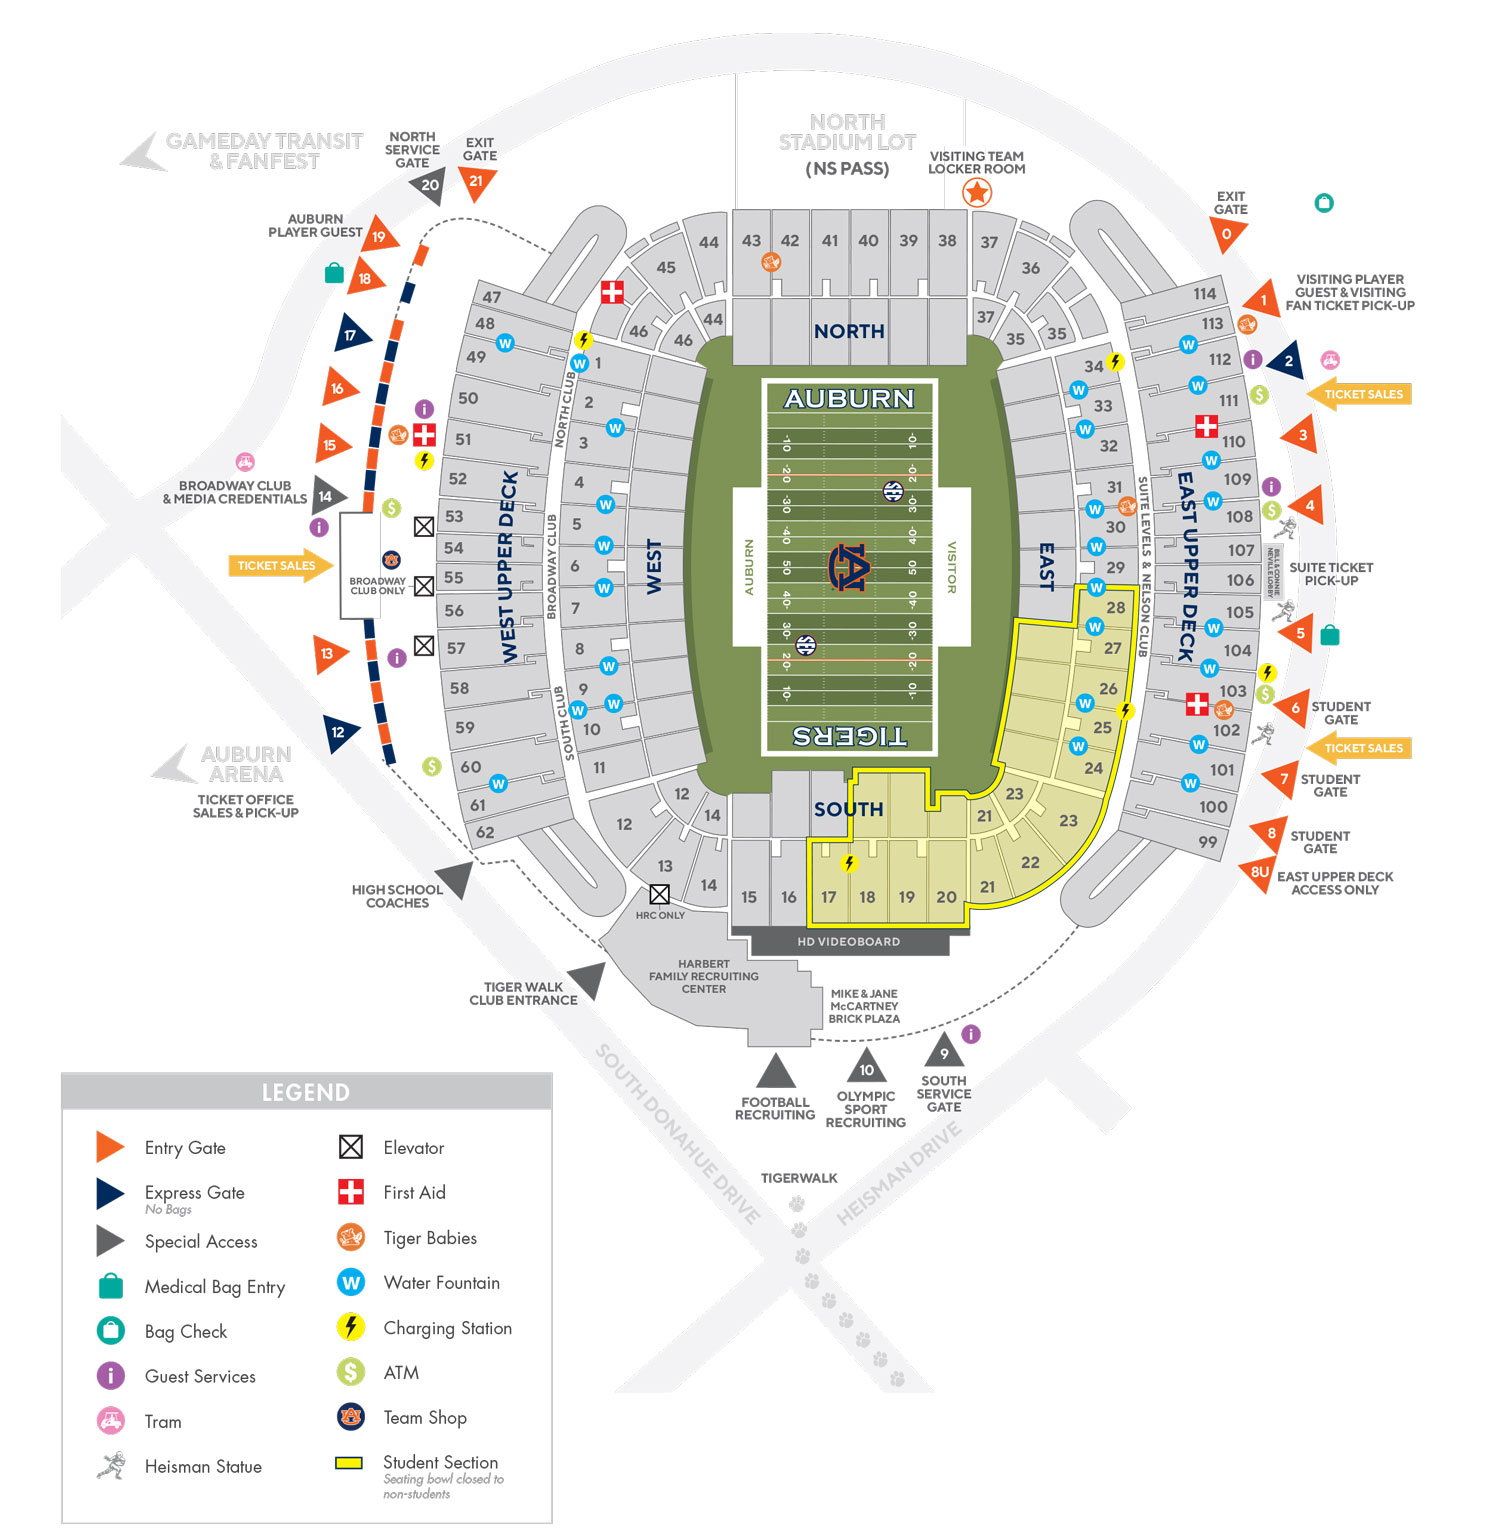 Football Gameday Fan Guide - Auburn University Athletics